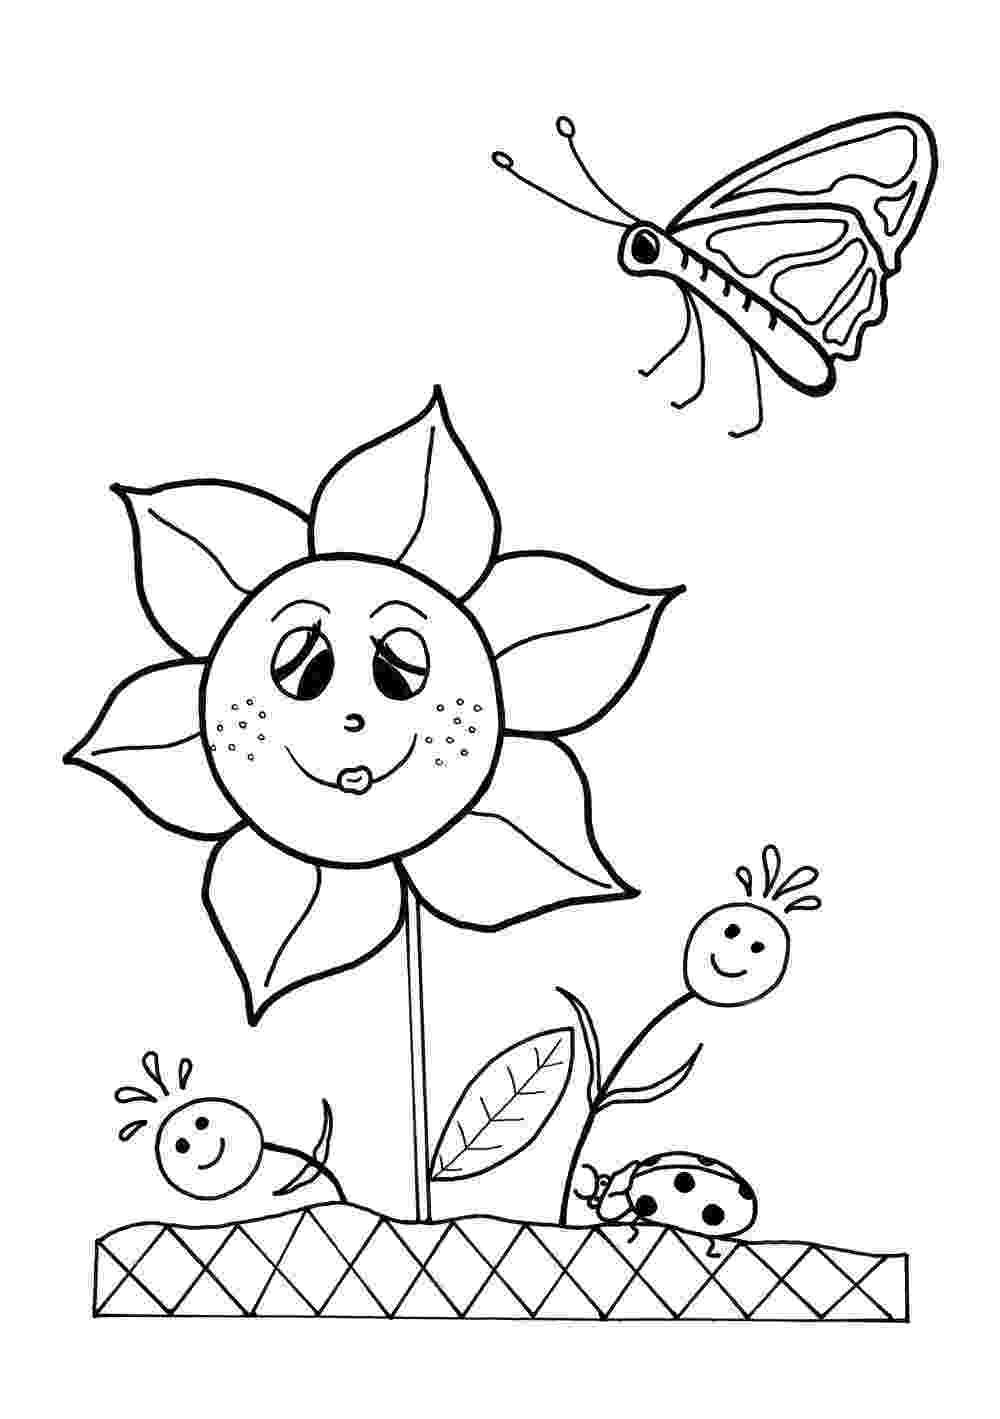 flowers printable coloring pages free printable flower coloring pages for kids cool2bkids pages printable coloring flowers